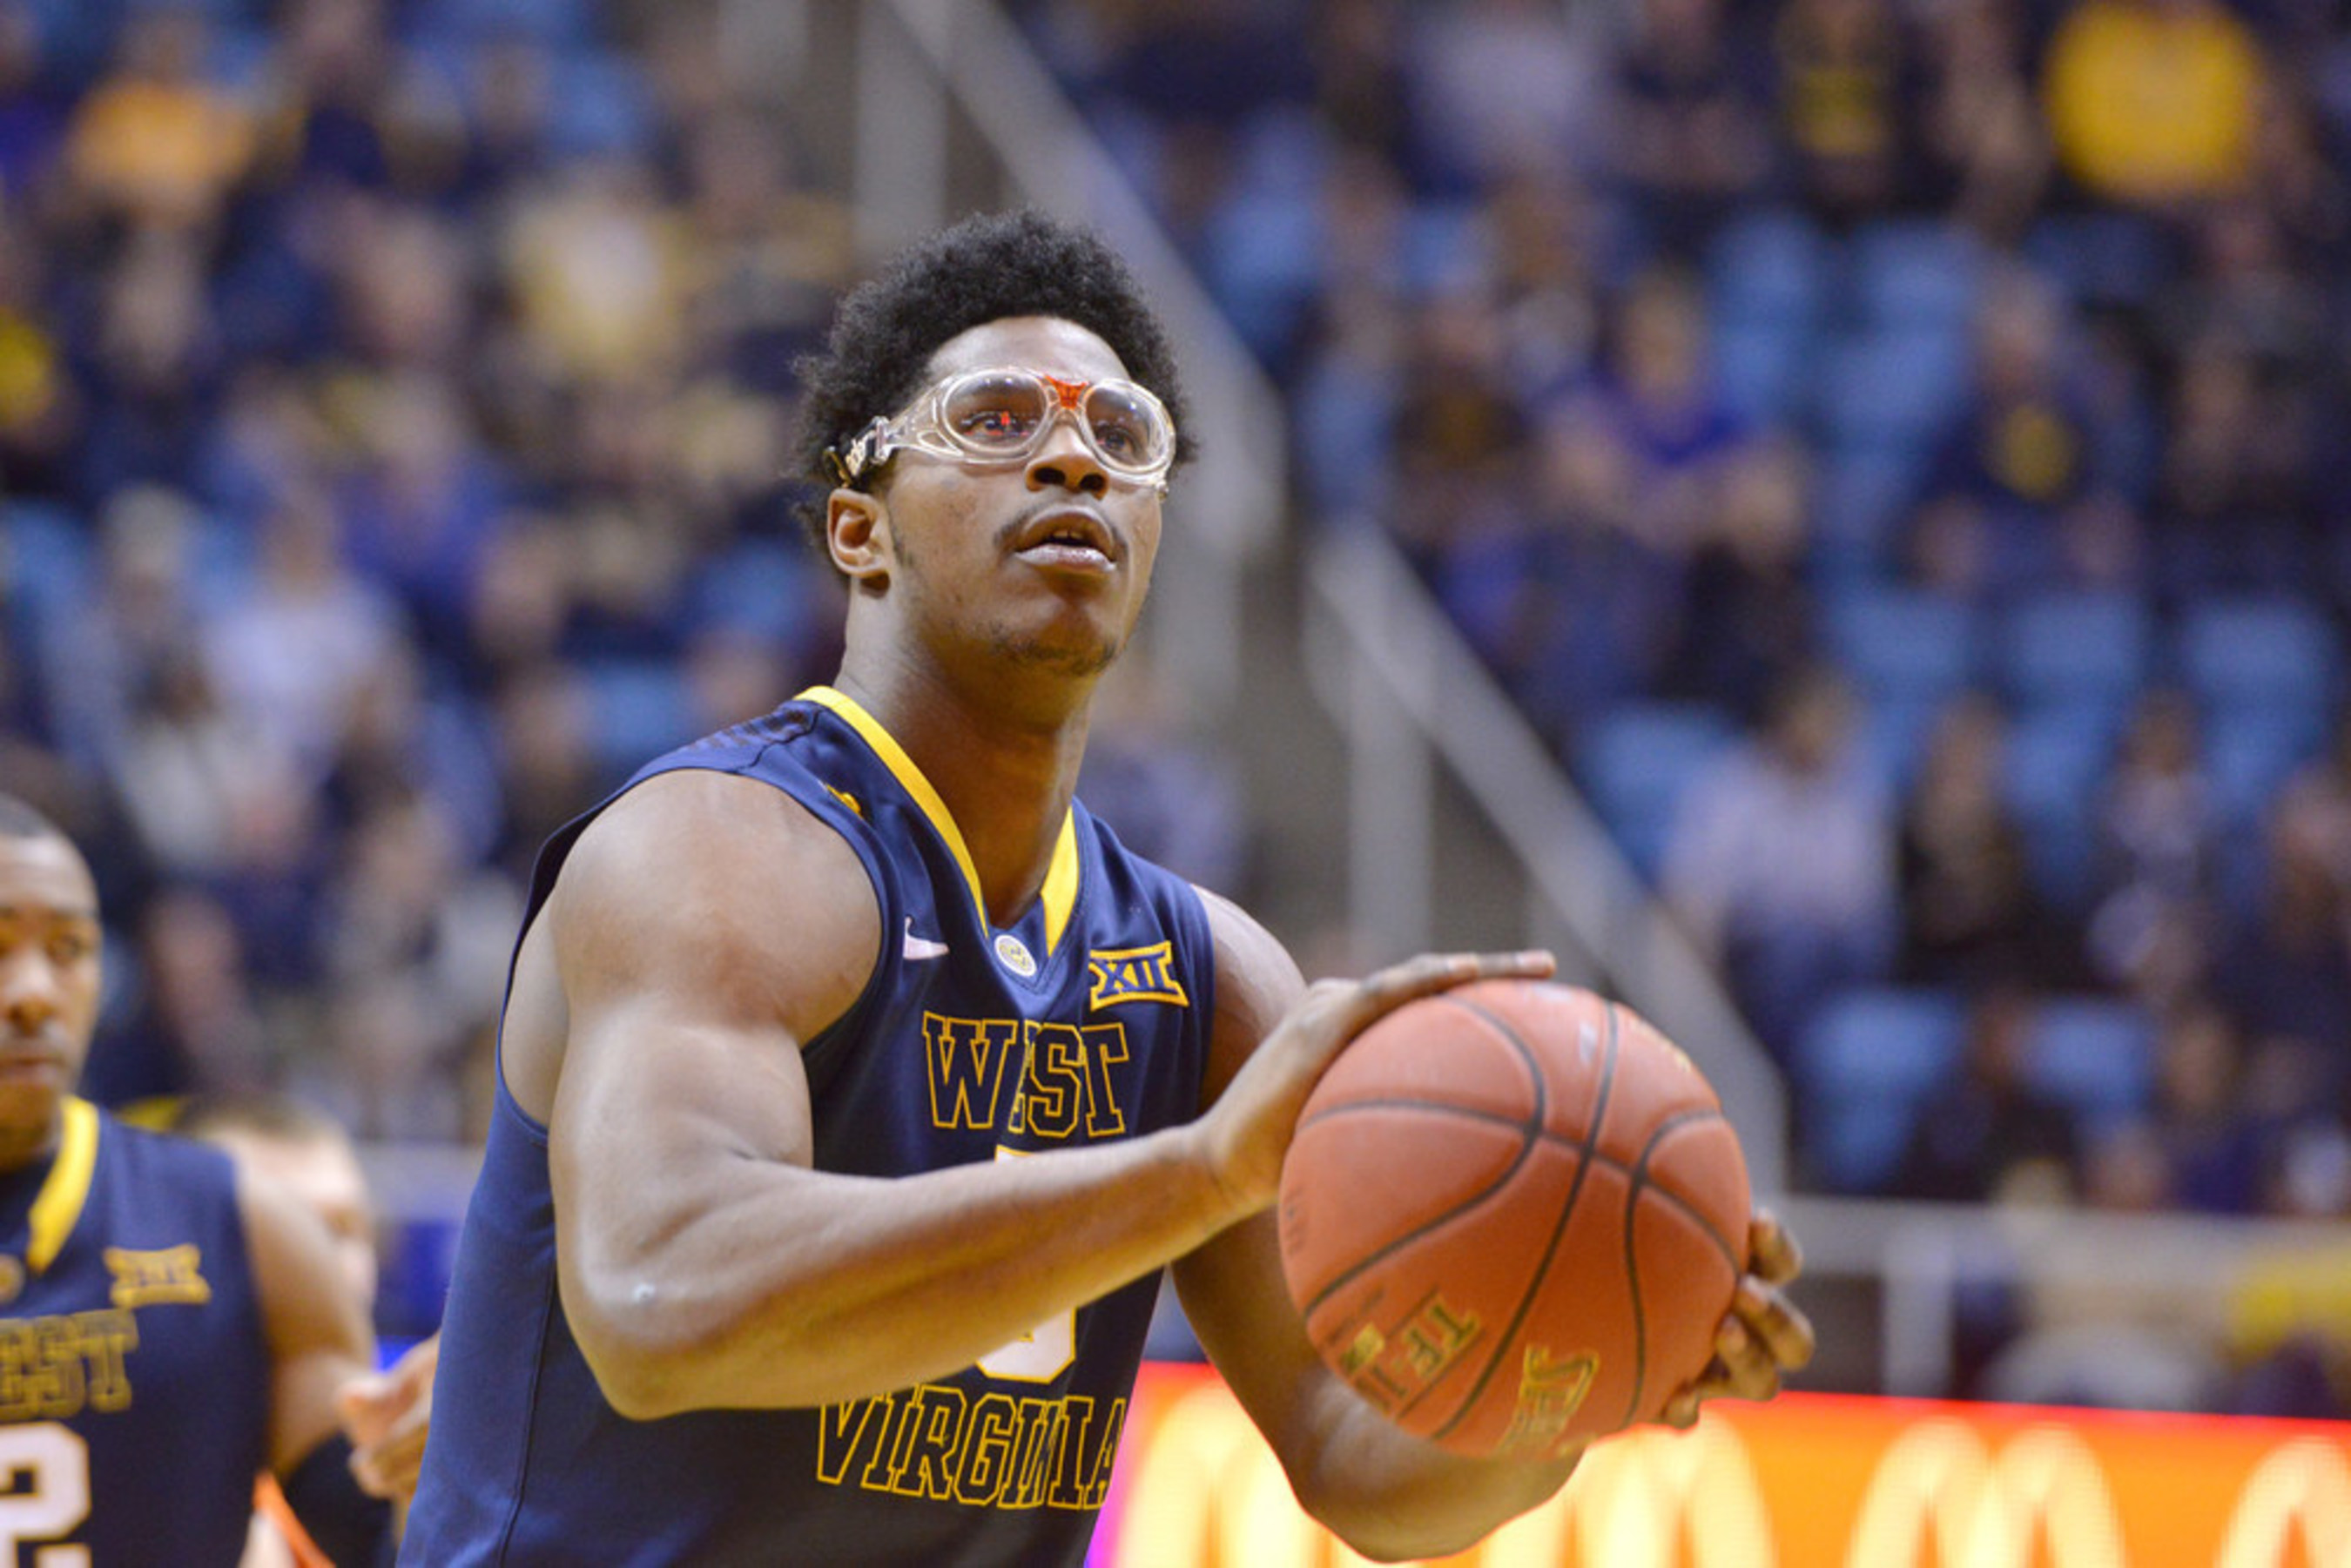 West Virginia college basketball player Devin Williams is known for his goggles. Protective eyewear like his can cut the risk of sports eye injury significantly.